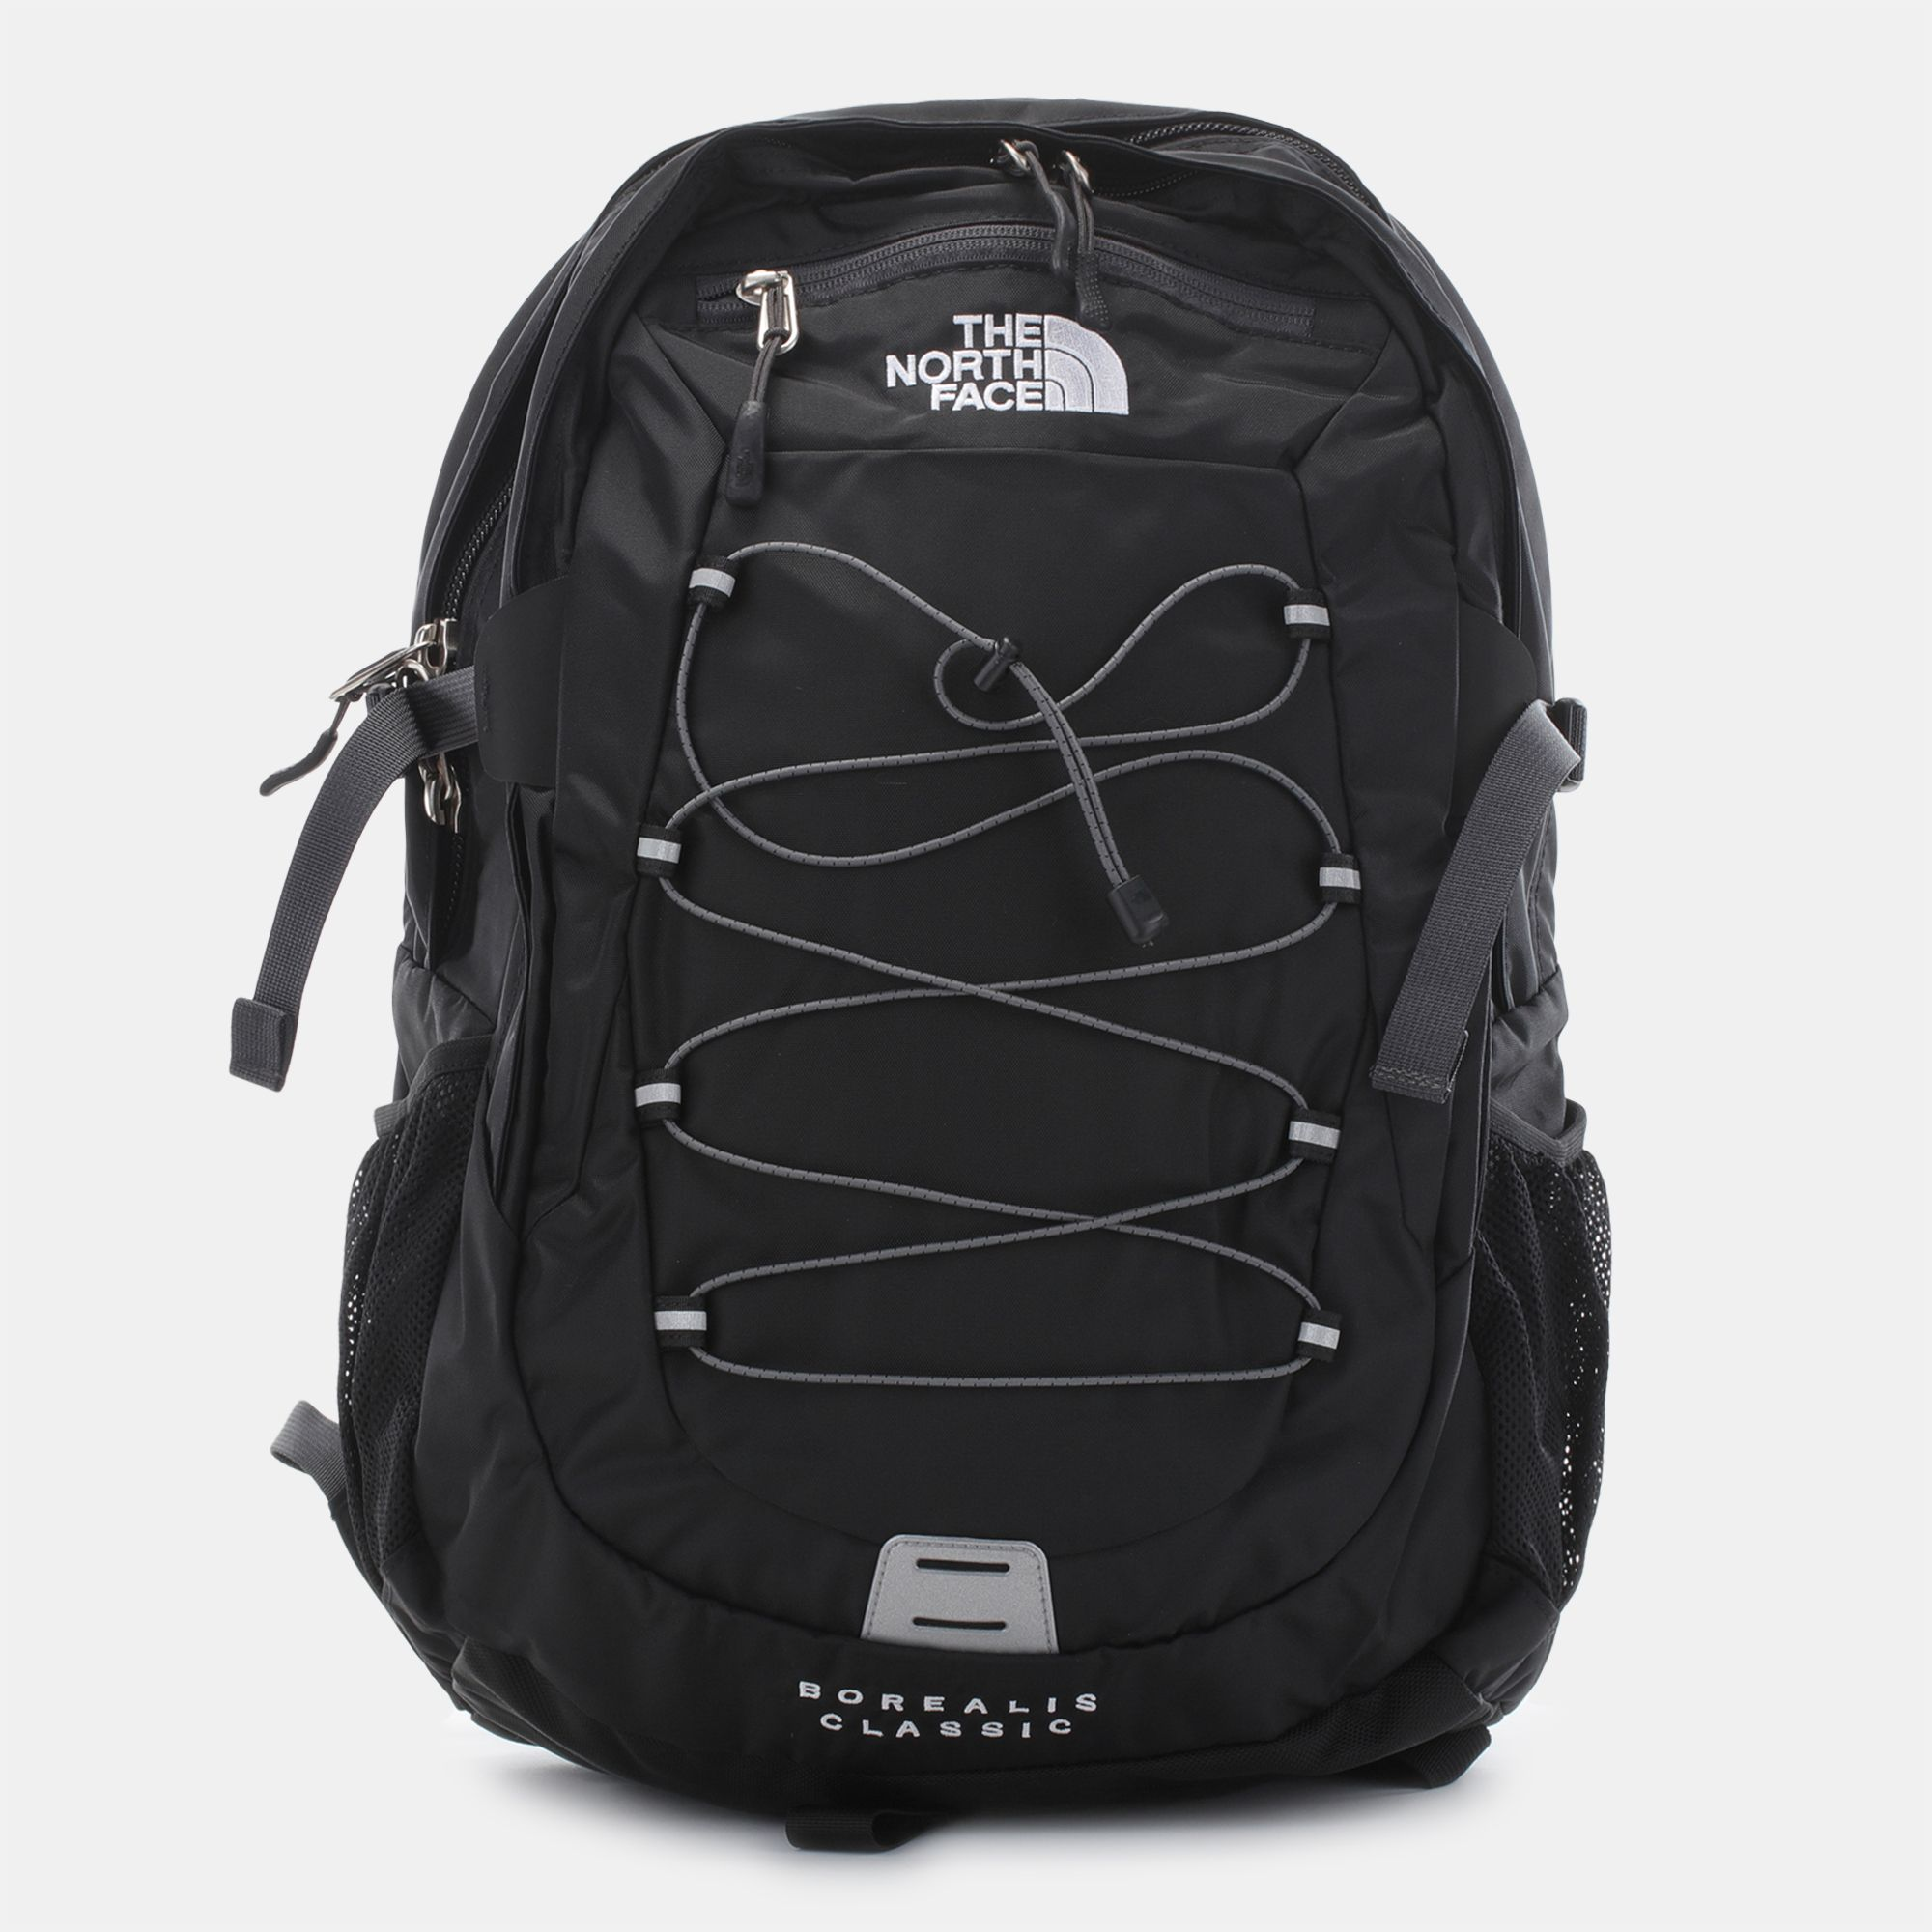 61eec15f2 The North Face Borealis Classic Backpack Black - CEAGESP